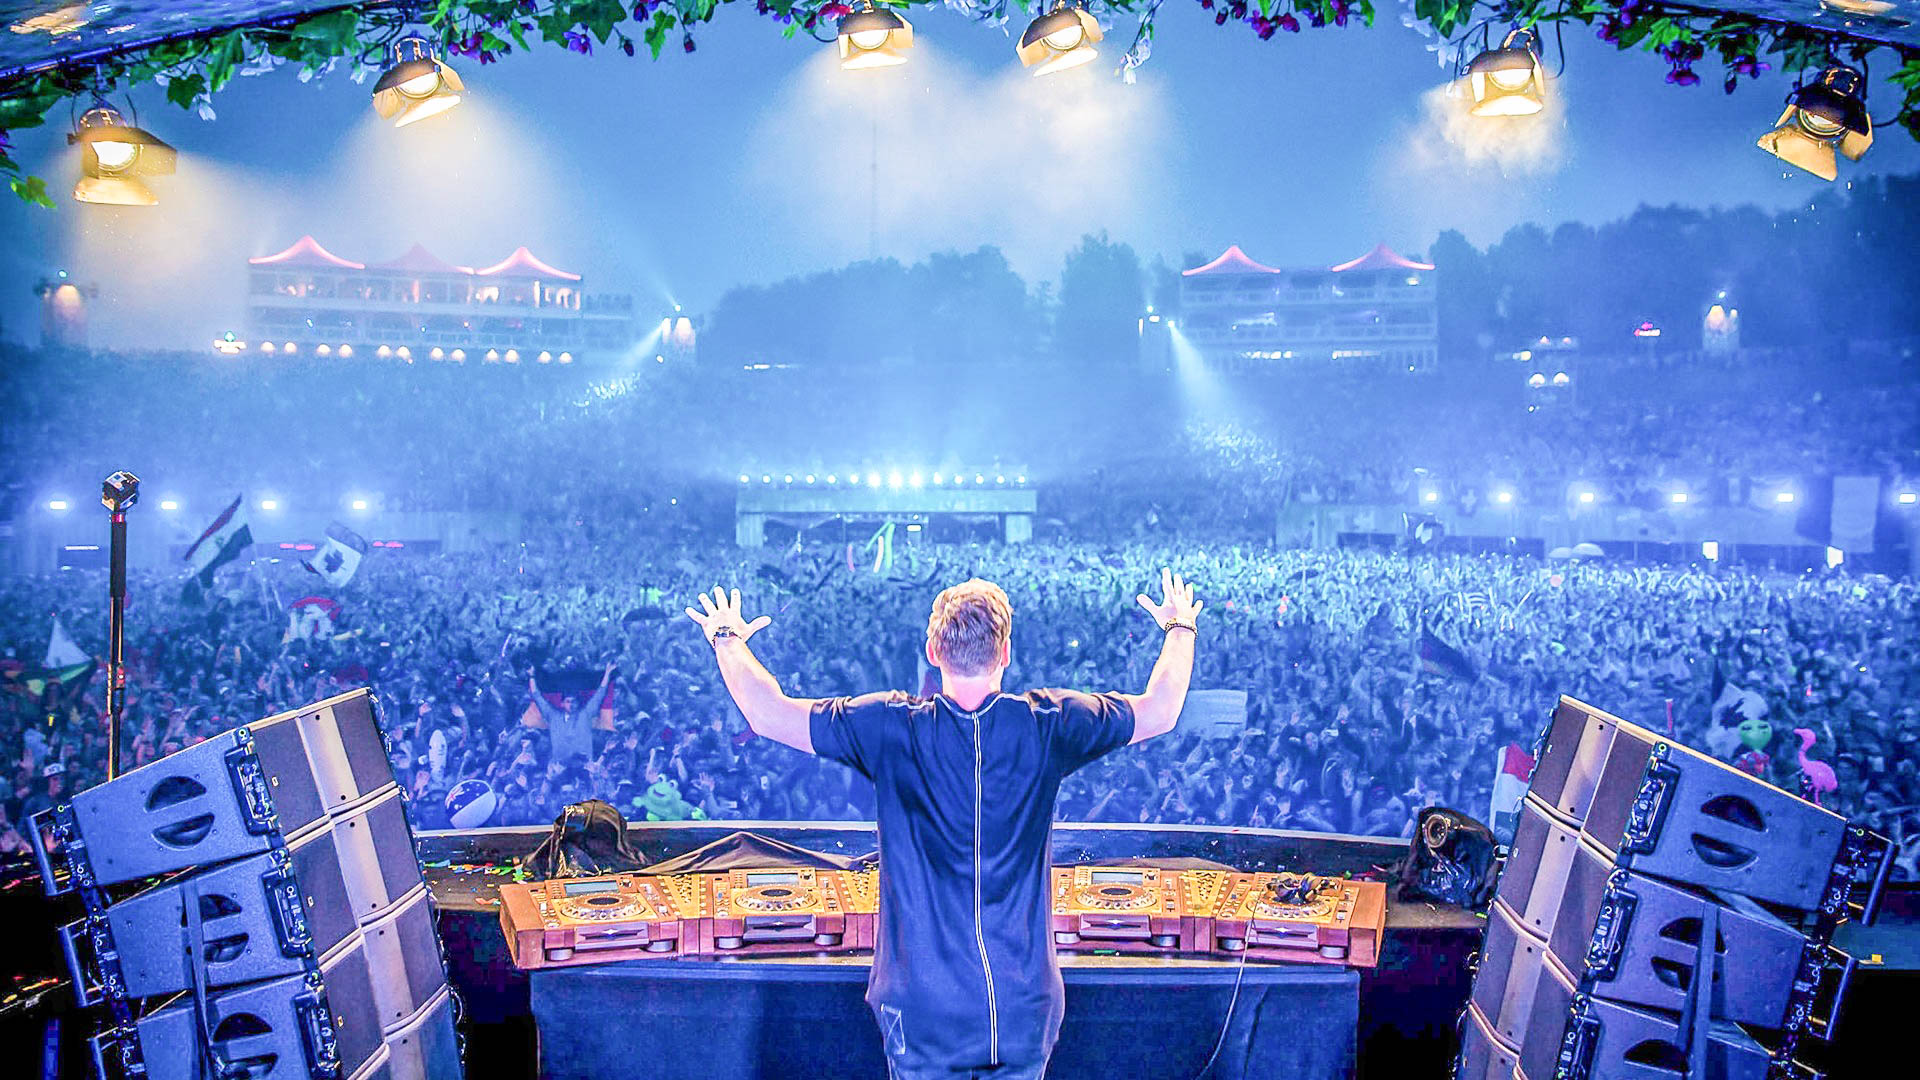 hardwell best selected hd wallpapers backgrounds in high